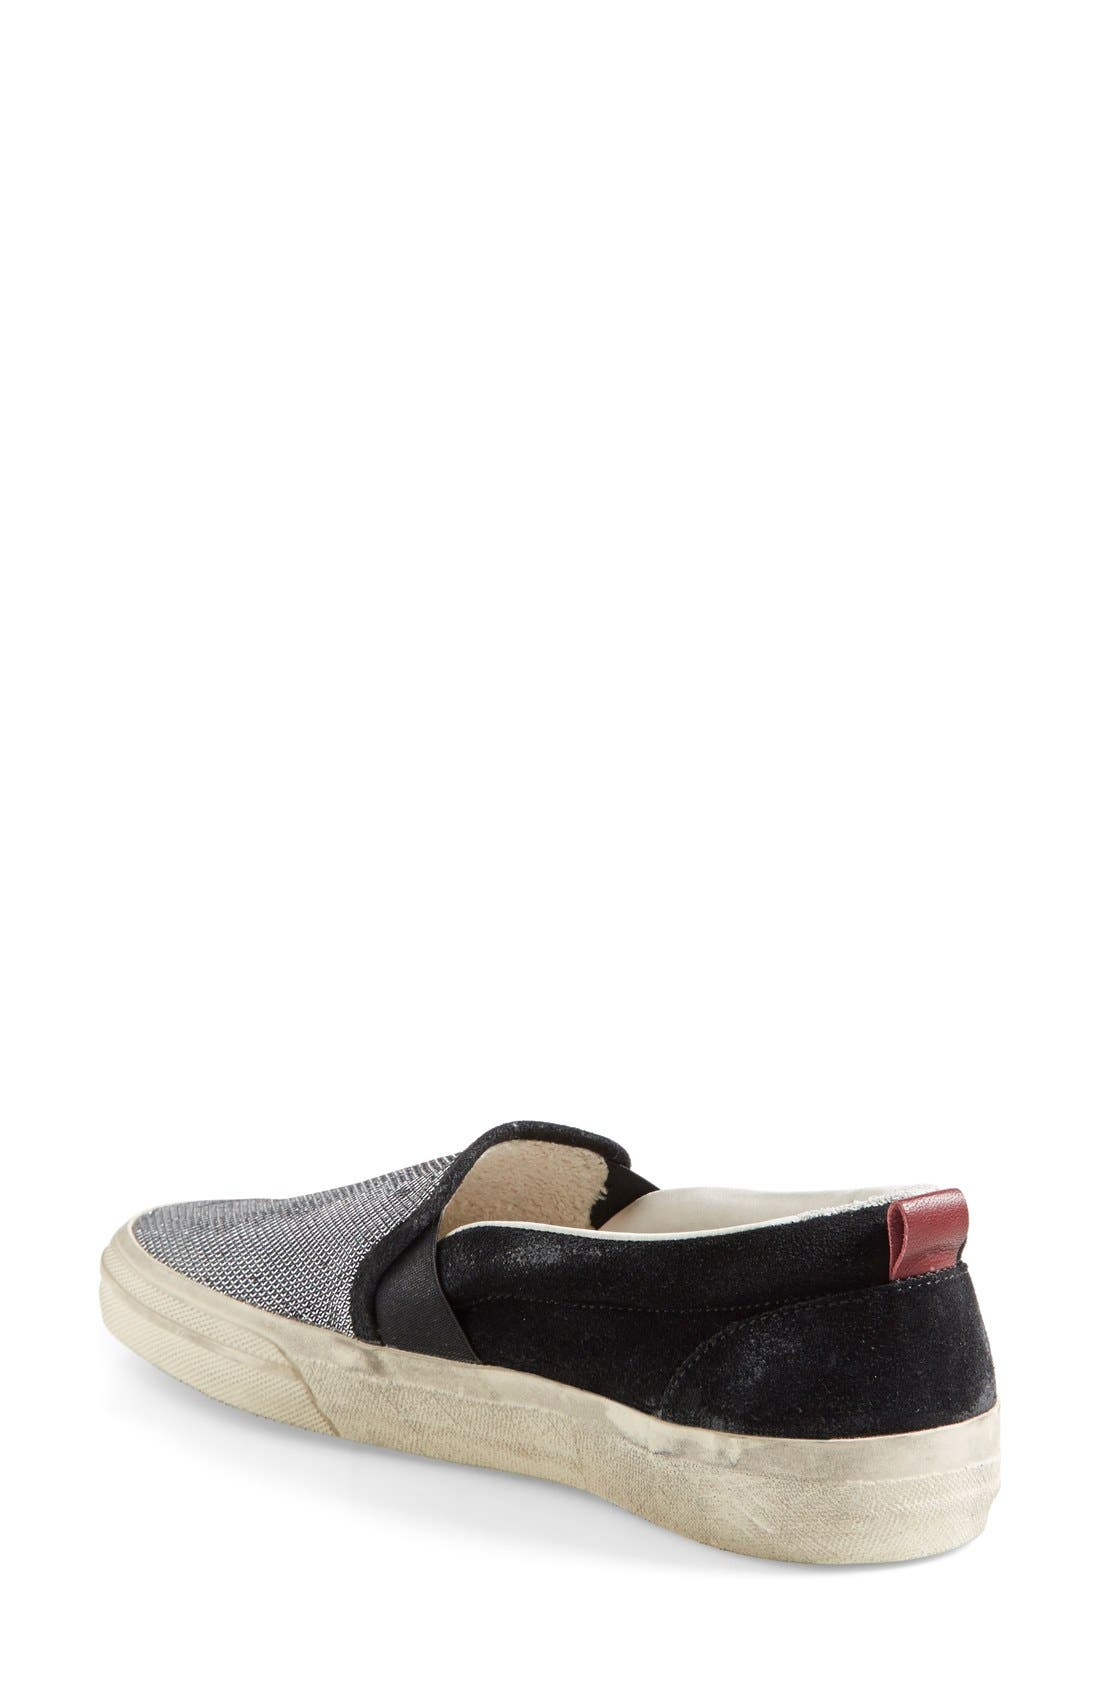 Alternate Image 2  - Golden Goose 'Sea Star' Slip-On Sneaker (Women)